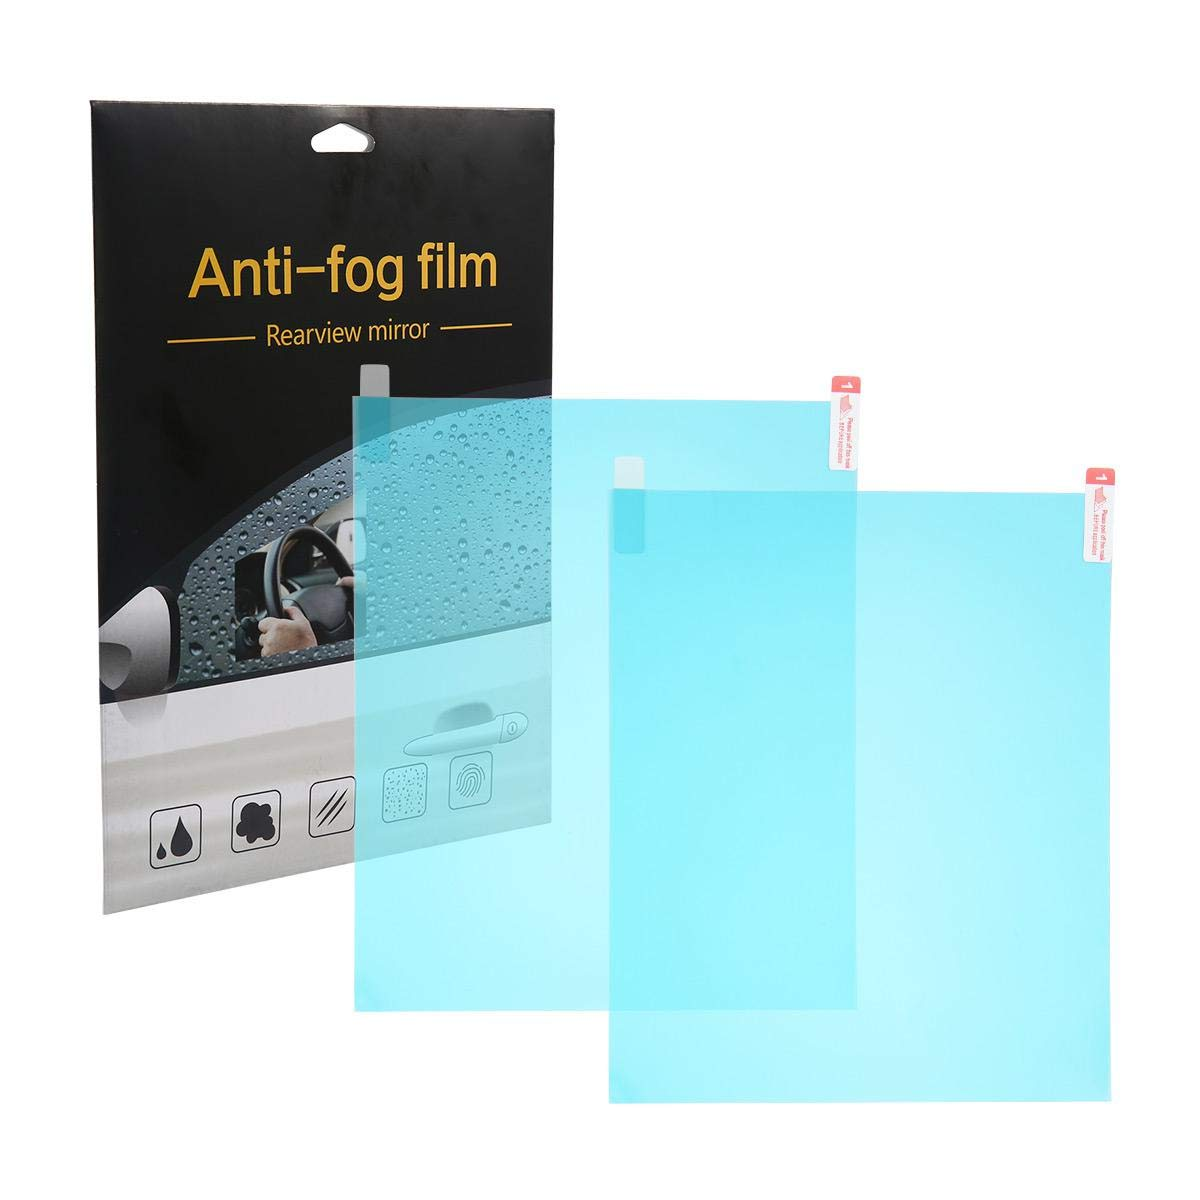 Leegoal Anti Fog Film, Rear View Mirror Film Anti-Scratch Anti-Fog Rainproof HD Car Window Clear Protective Film for Universal Car, SUV, Trunk